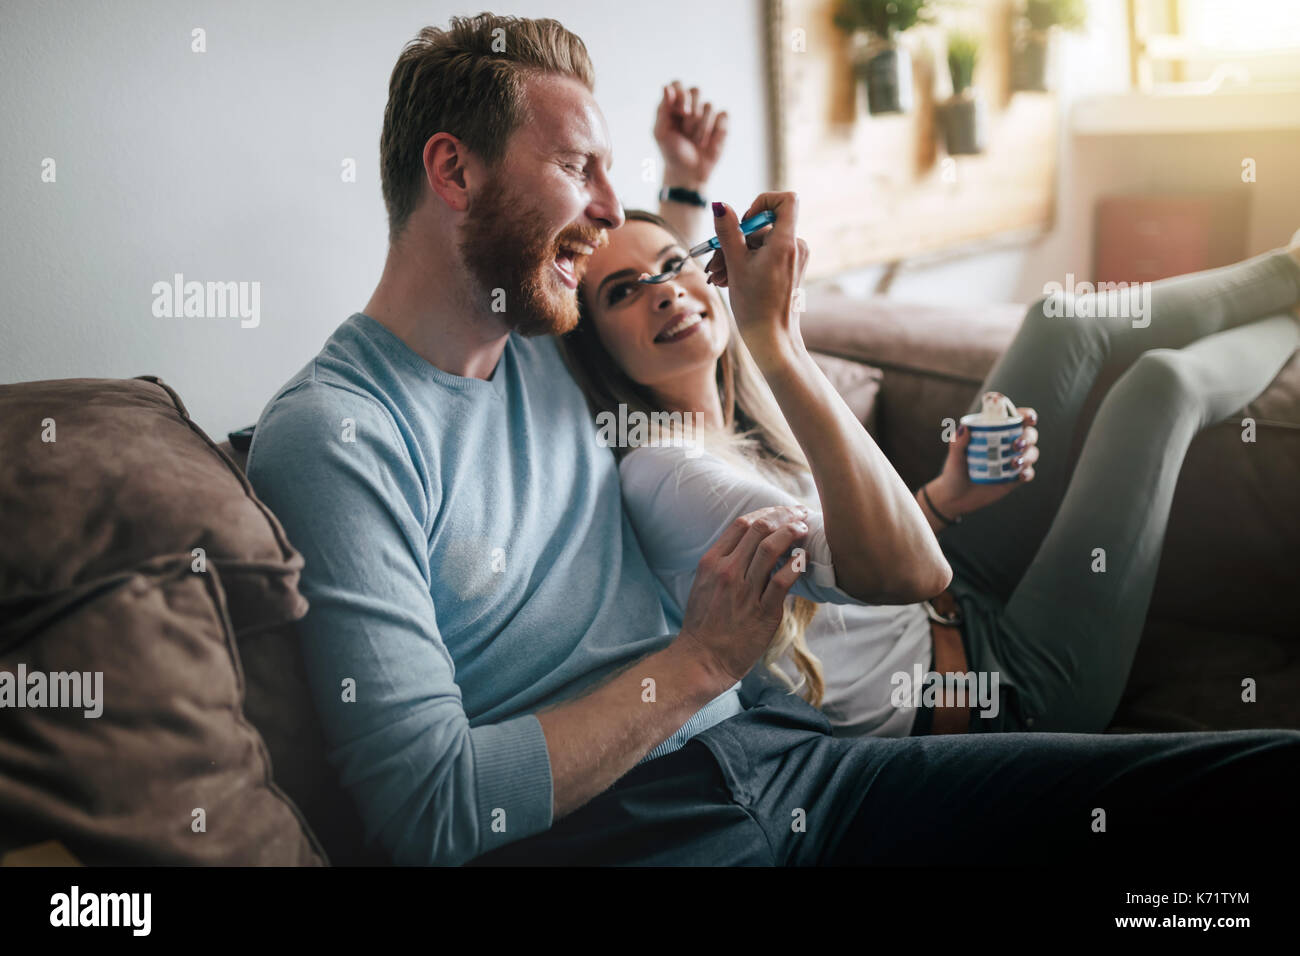 Romantic couple eating ice cream together and watching tv - Stock Image